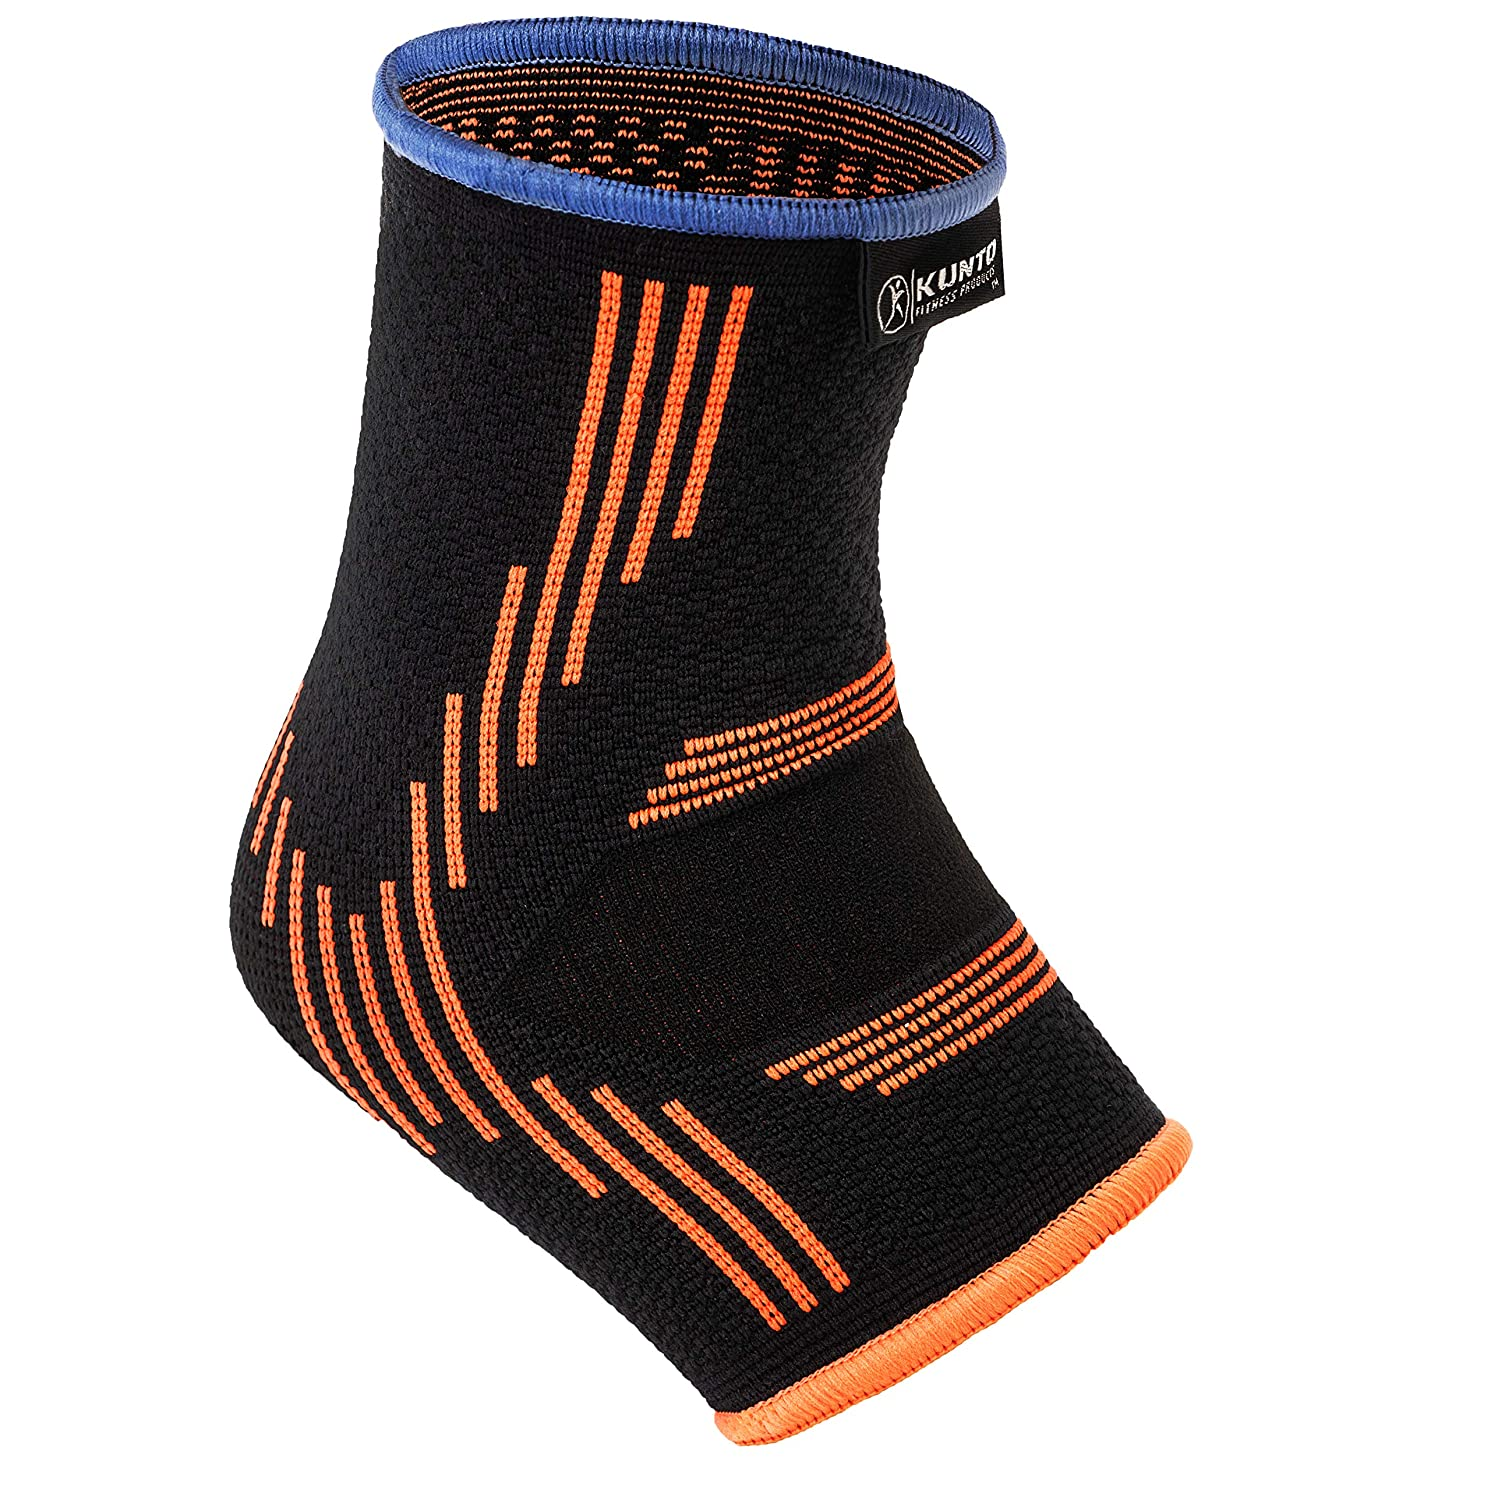 Kunto Fitness Ankle Brace Compression Support Sleeves (1 Pair) for Joint Pain, Achilles Tendon, Plantar Fasciitis, Swelling Relief, Injury Recovery